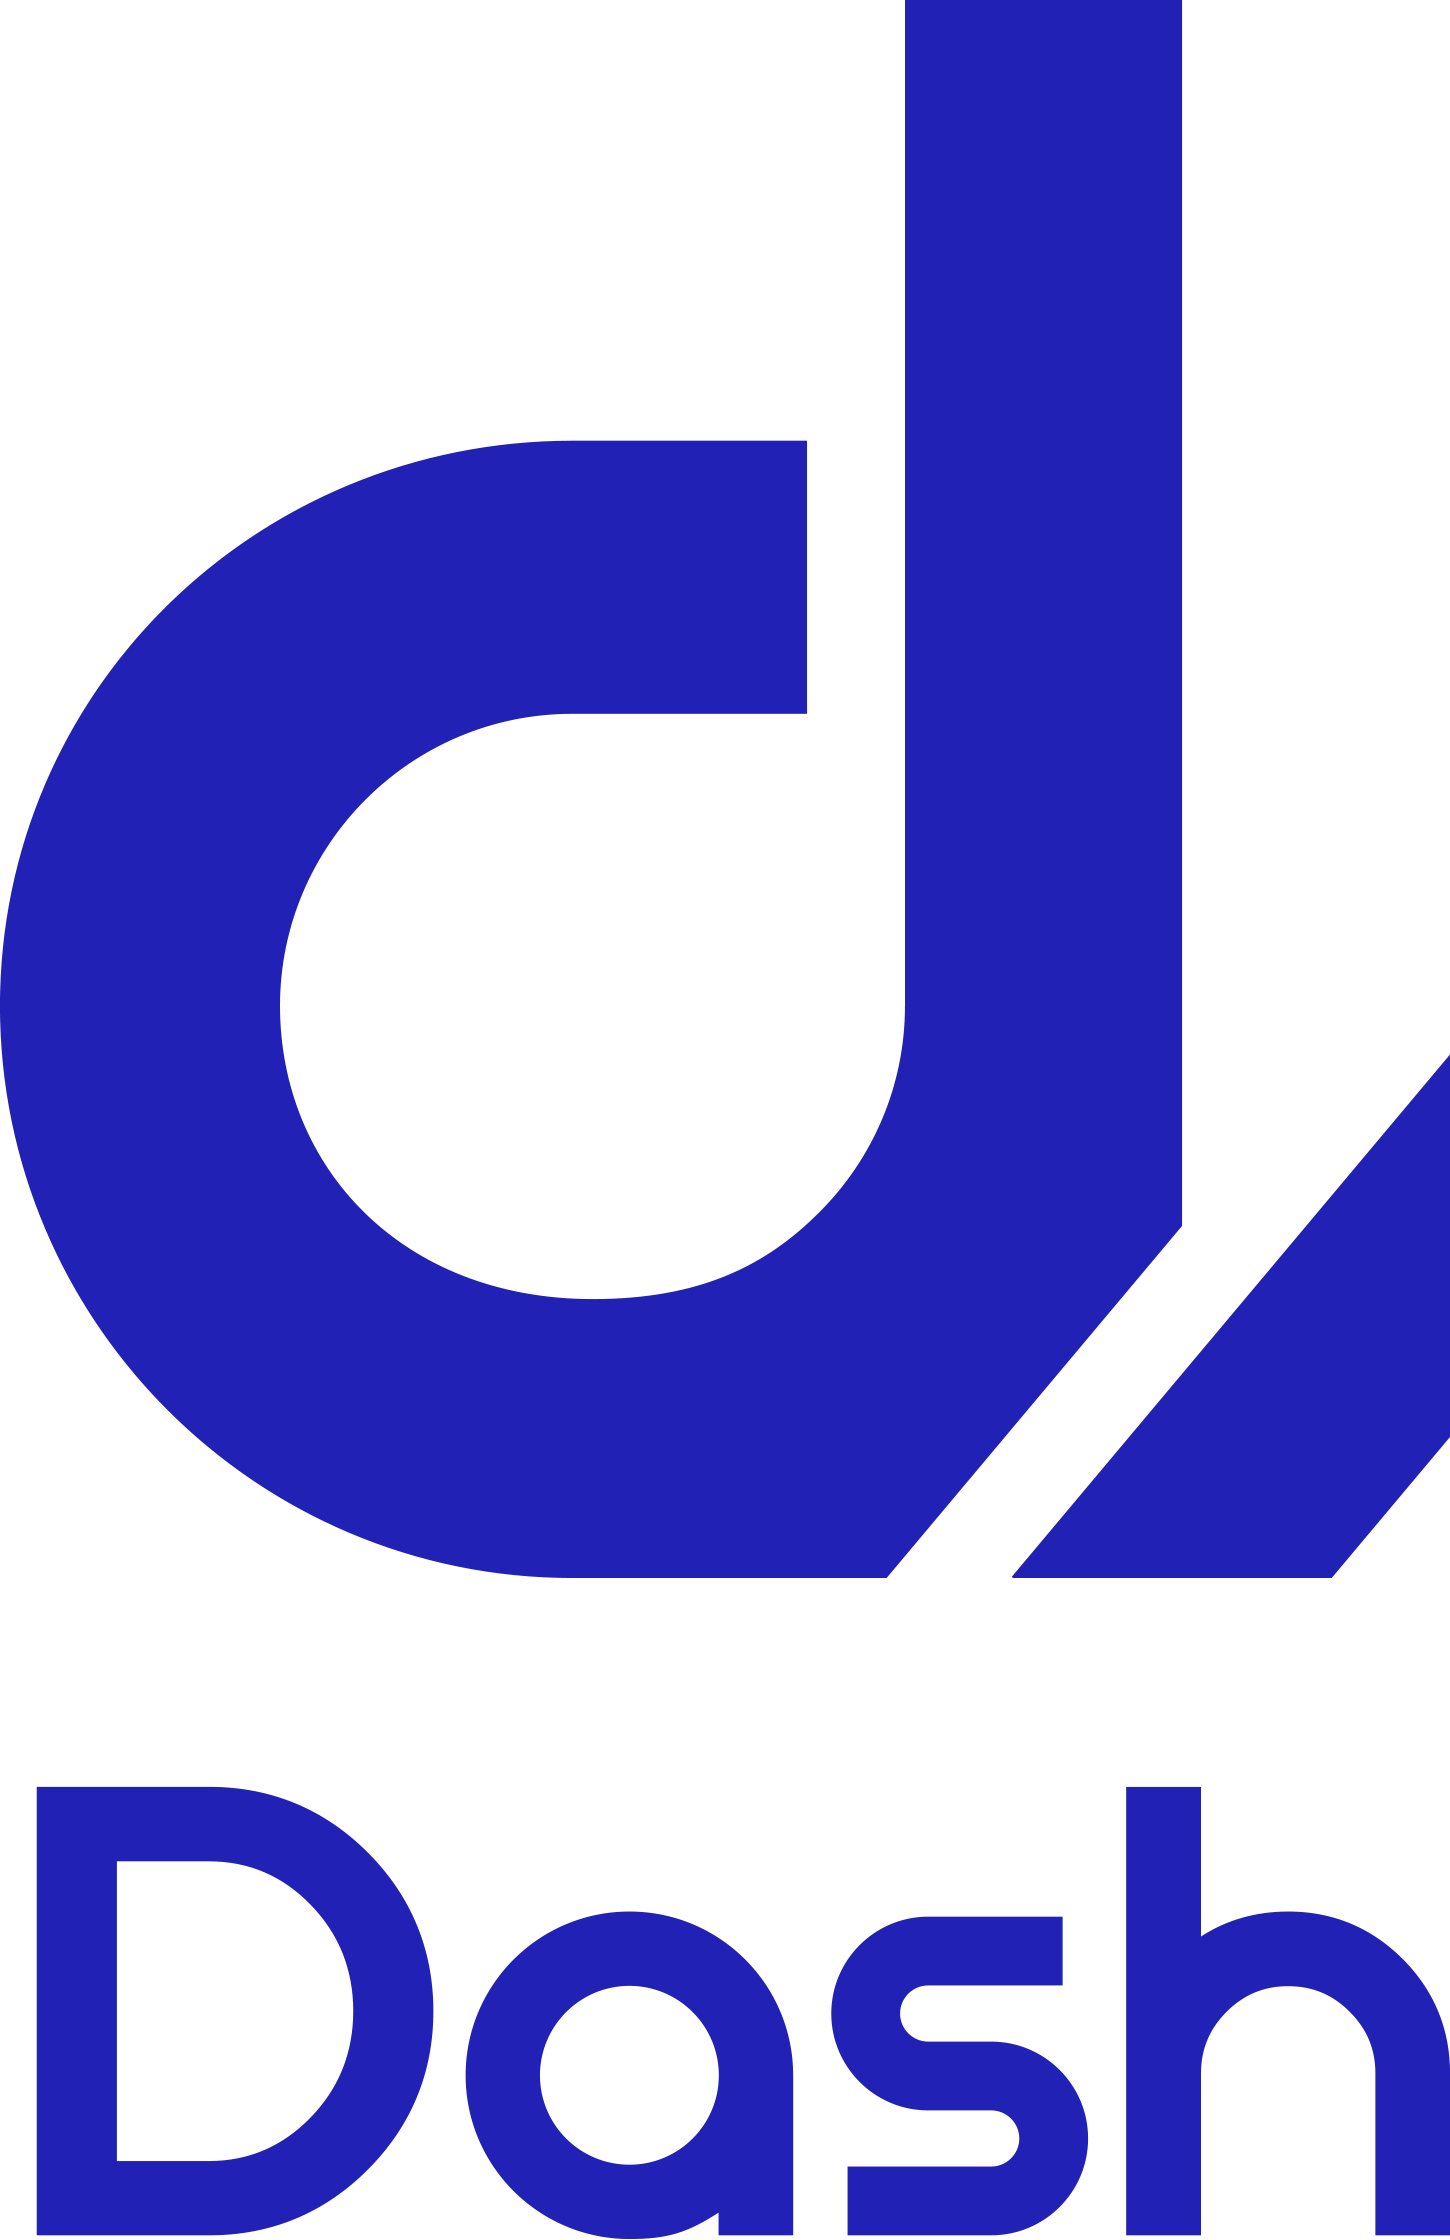 Dash Platform Selected by Canlan Ice Sports Corp. as Its CRM Software Solution to Manage Its 20 Recreational Facilities Across North America